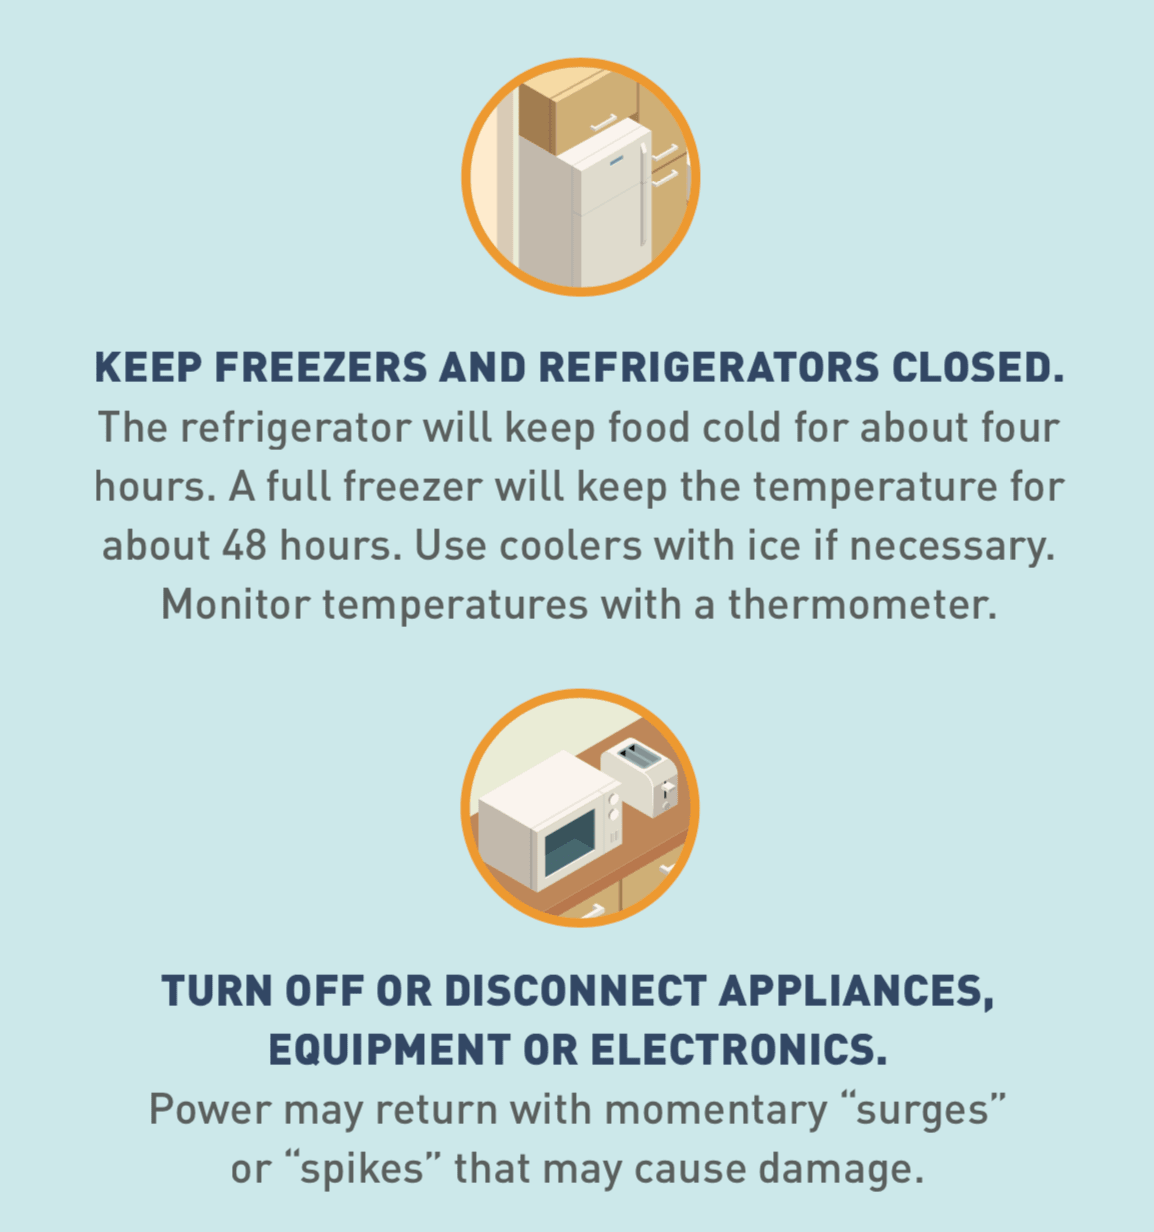 Illustrated icon of a refrigerator and freezer, and icon of a toaster and microwave.